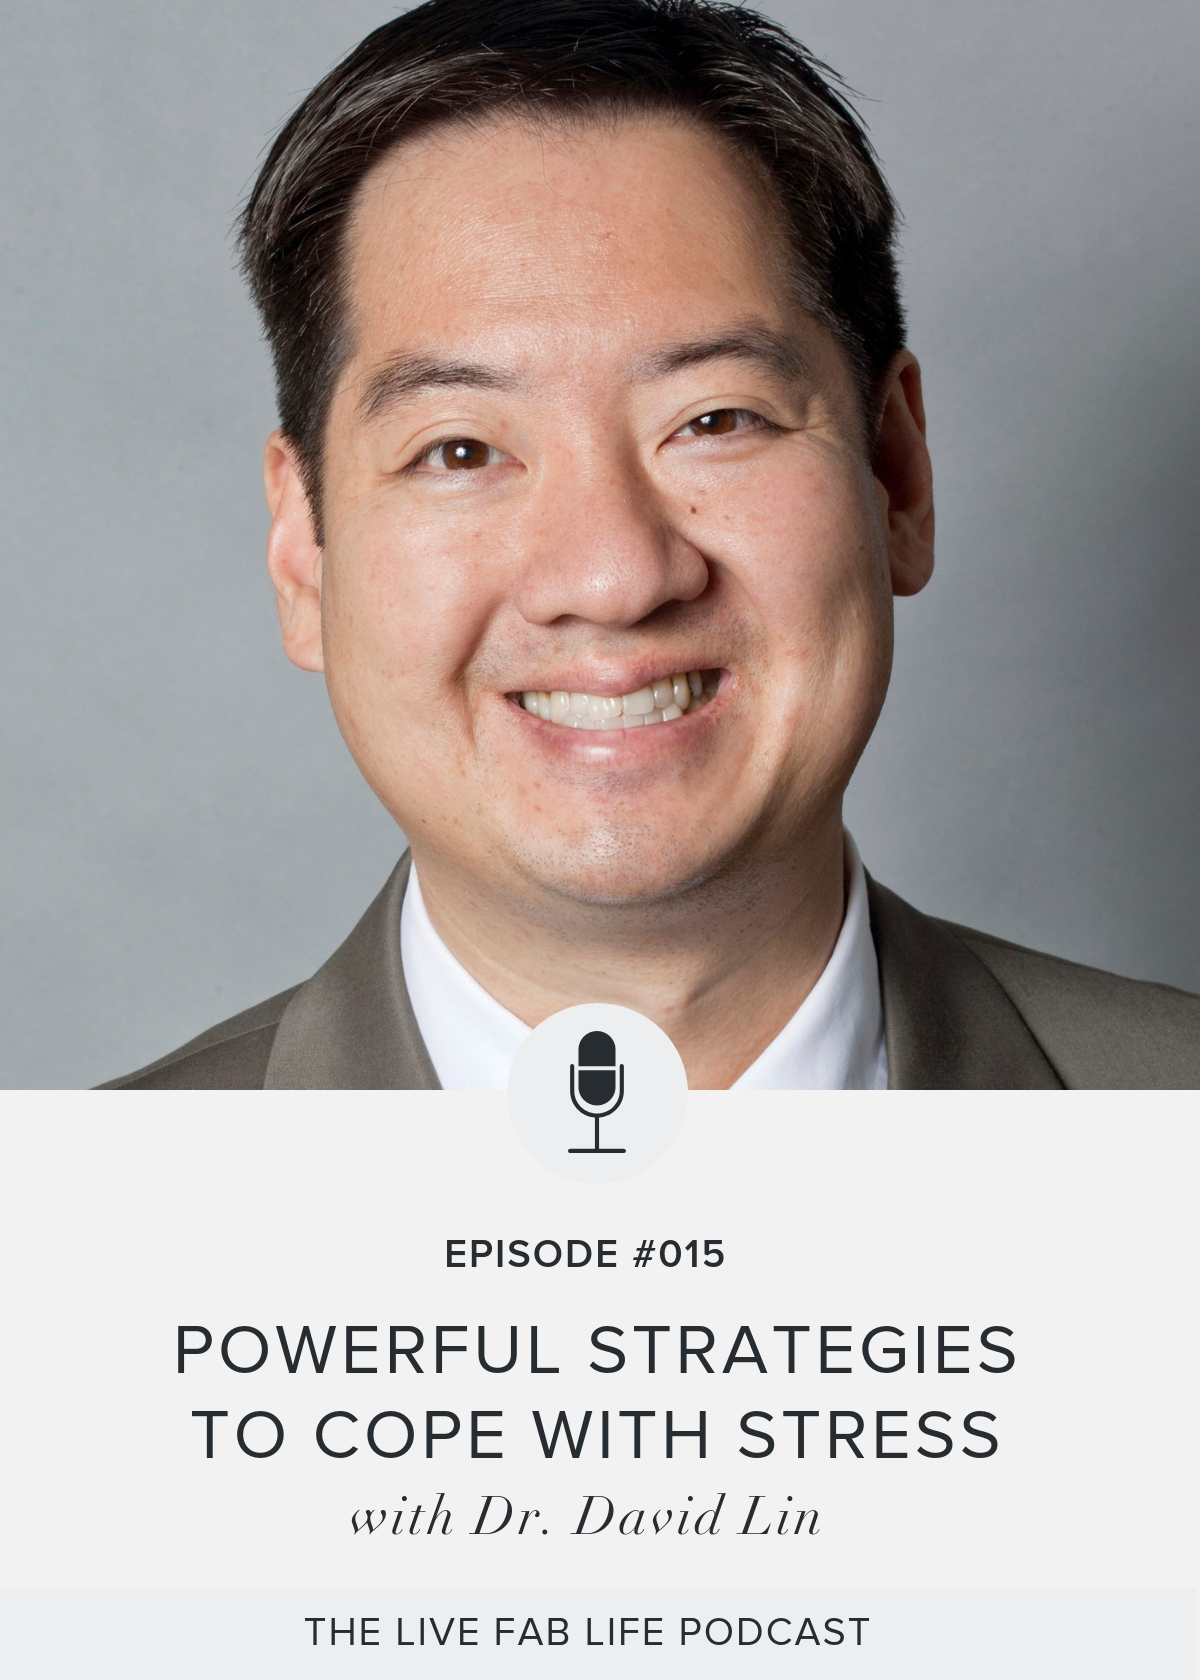 Episode 015: Powerful Strategies to Cope with Stress with Dr. David Lin